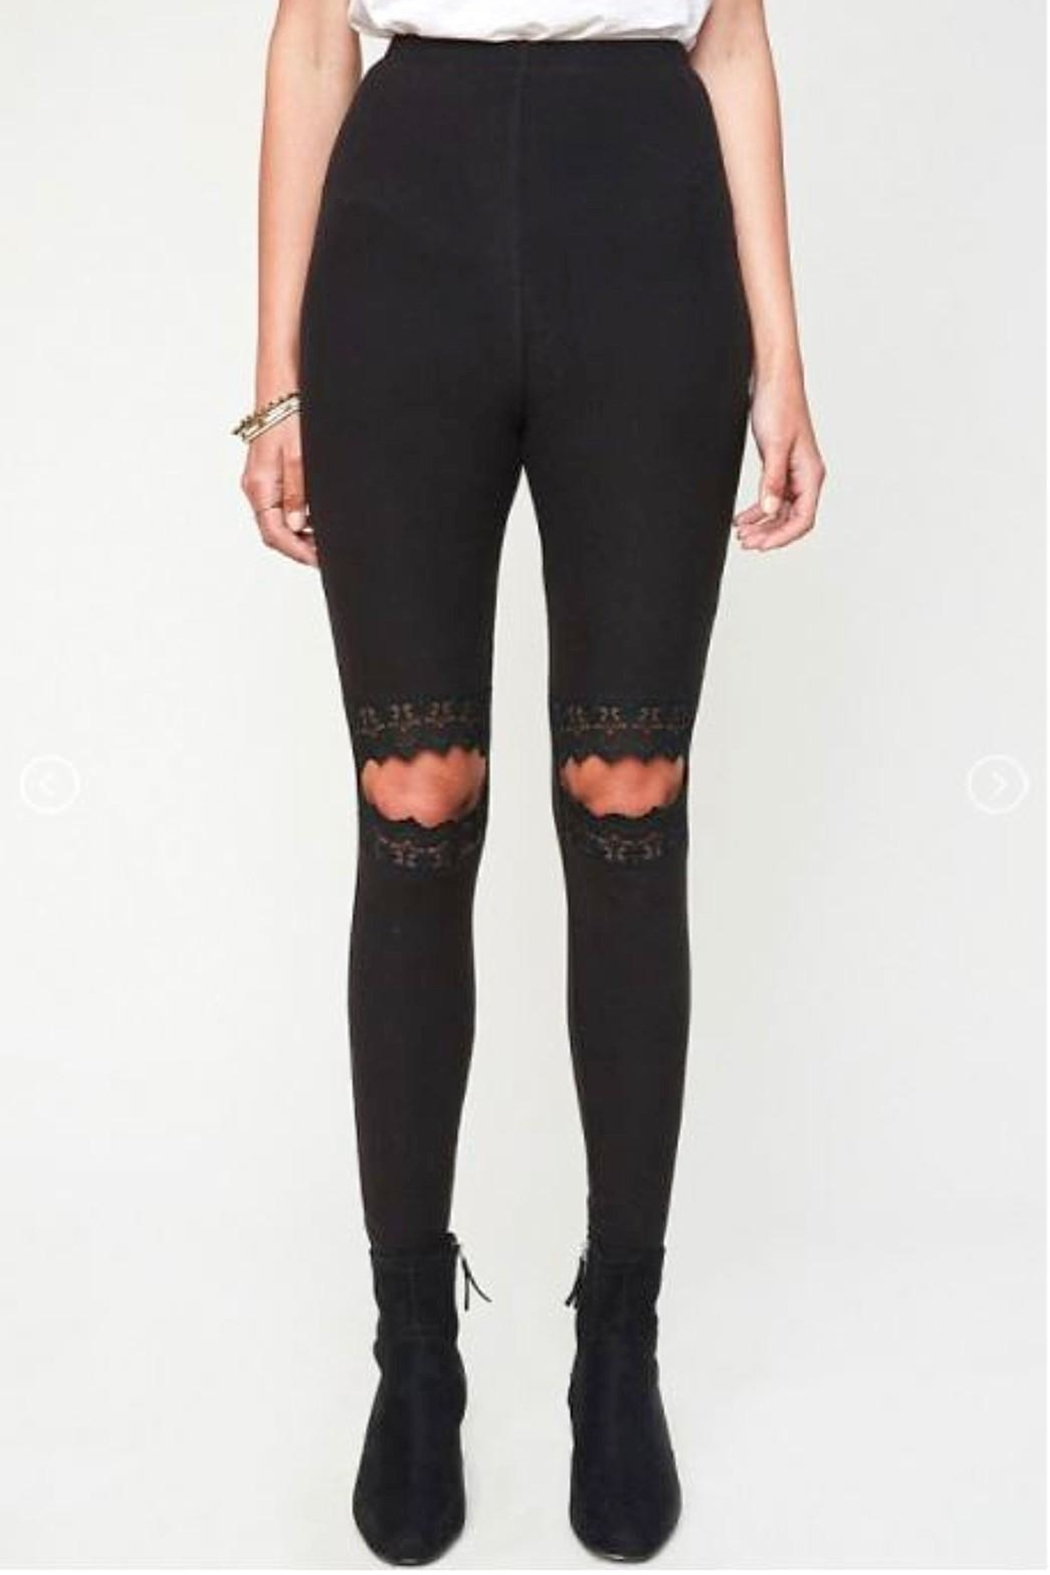 Hayden Los Angeles Lace Cut-Out Leggings - Main Image